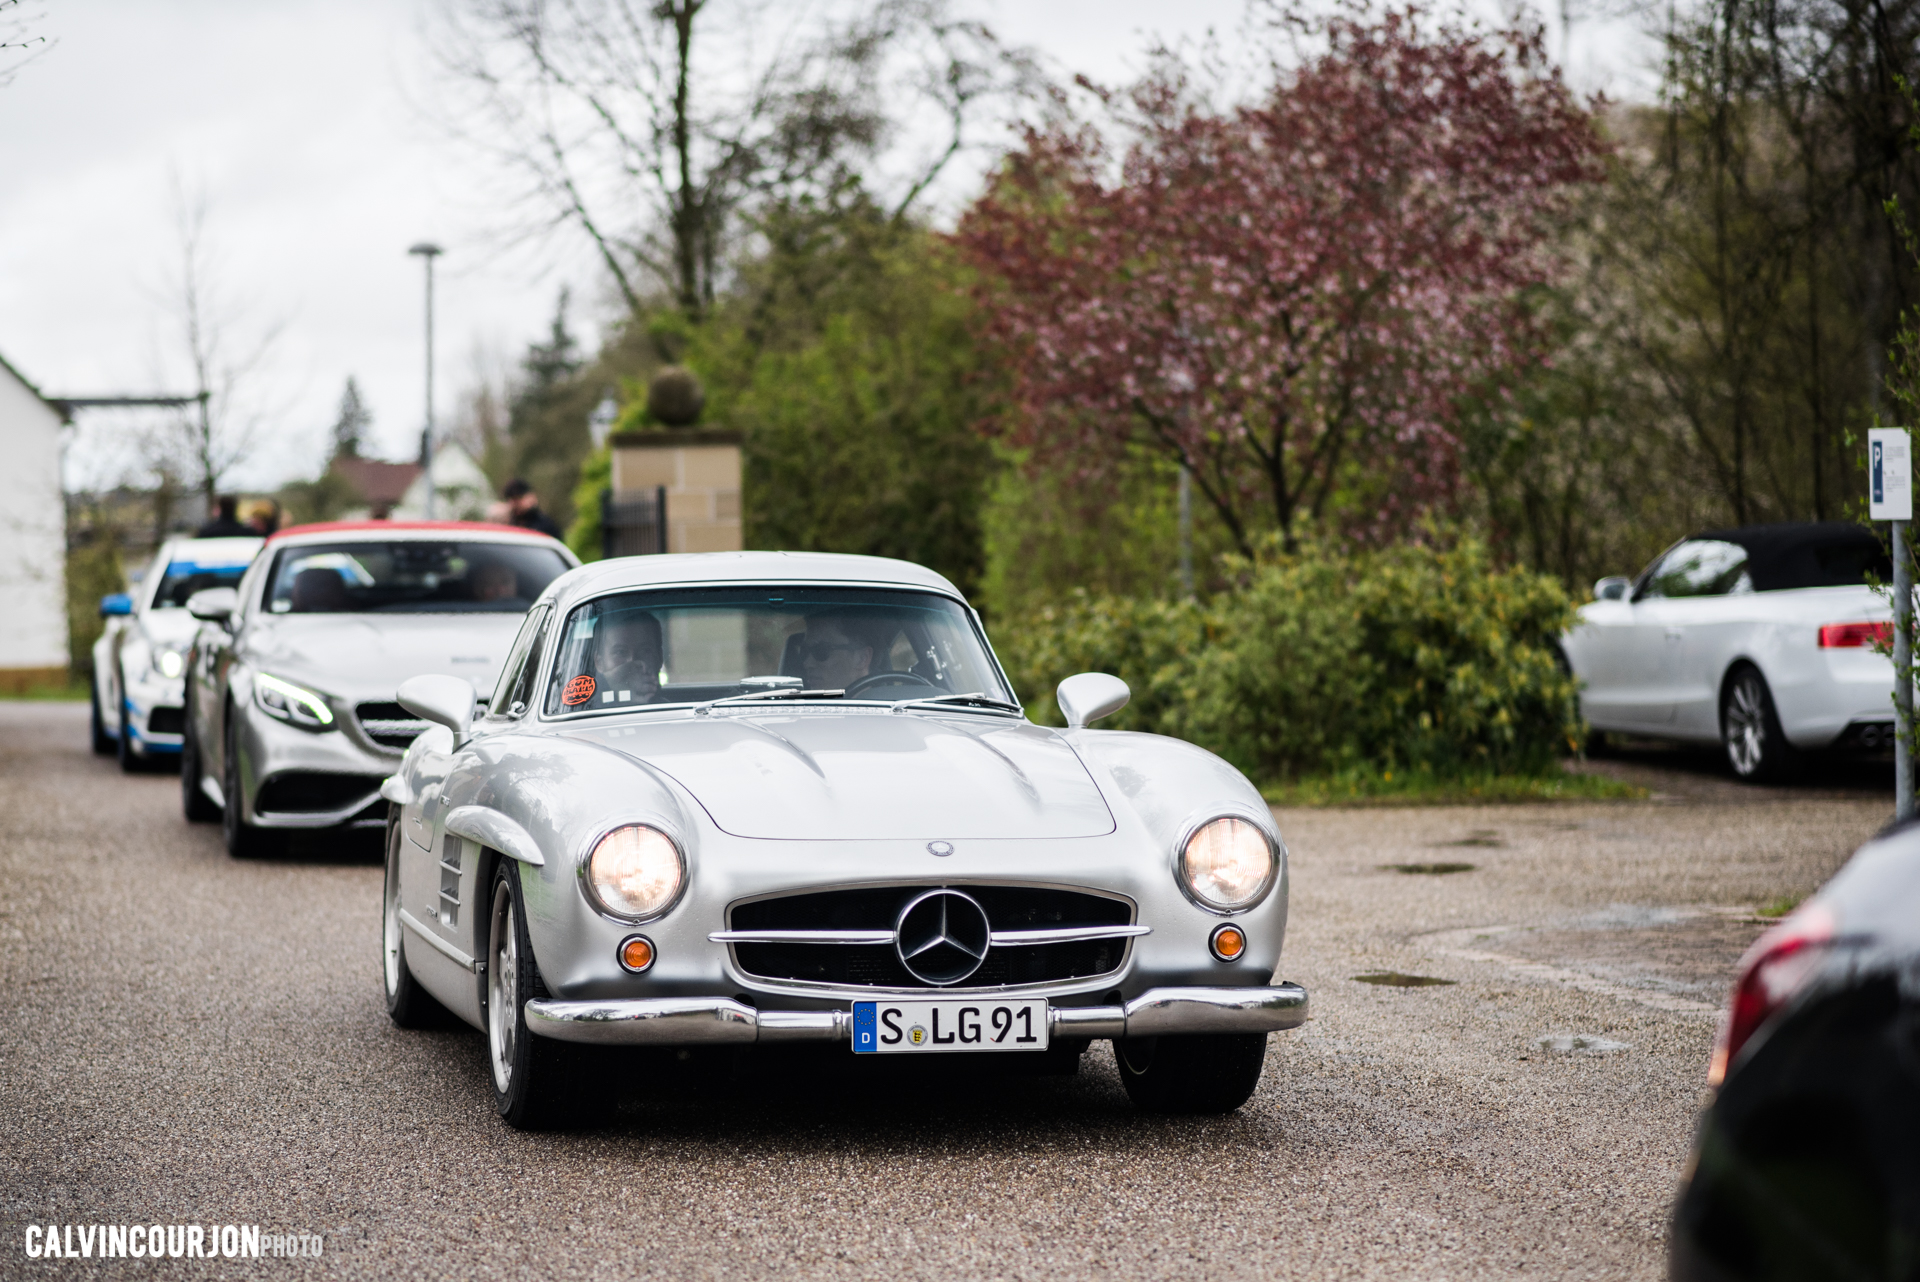 Mercedes Benz 300SL side face - 2016 - Calvin Courjon Photographie